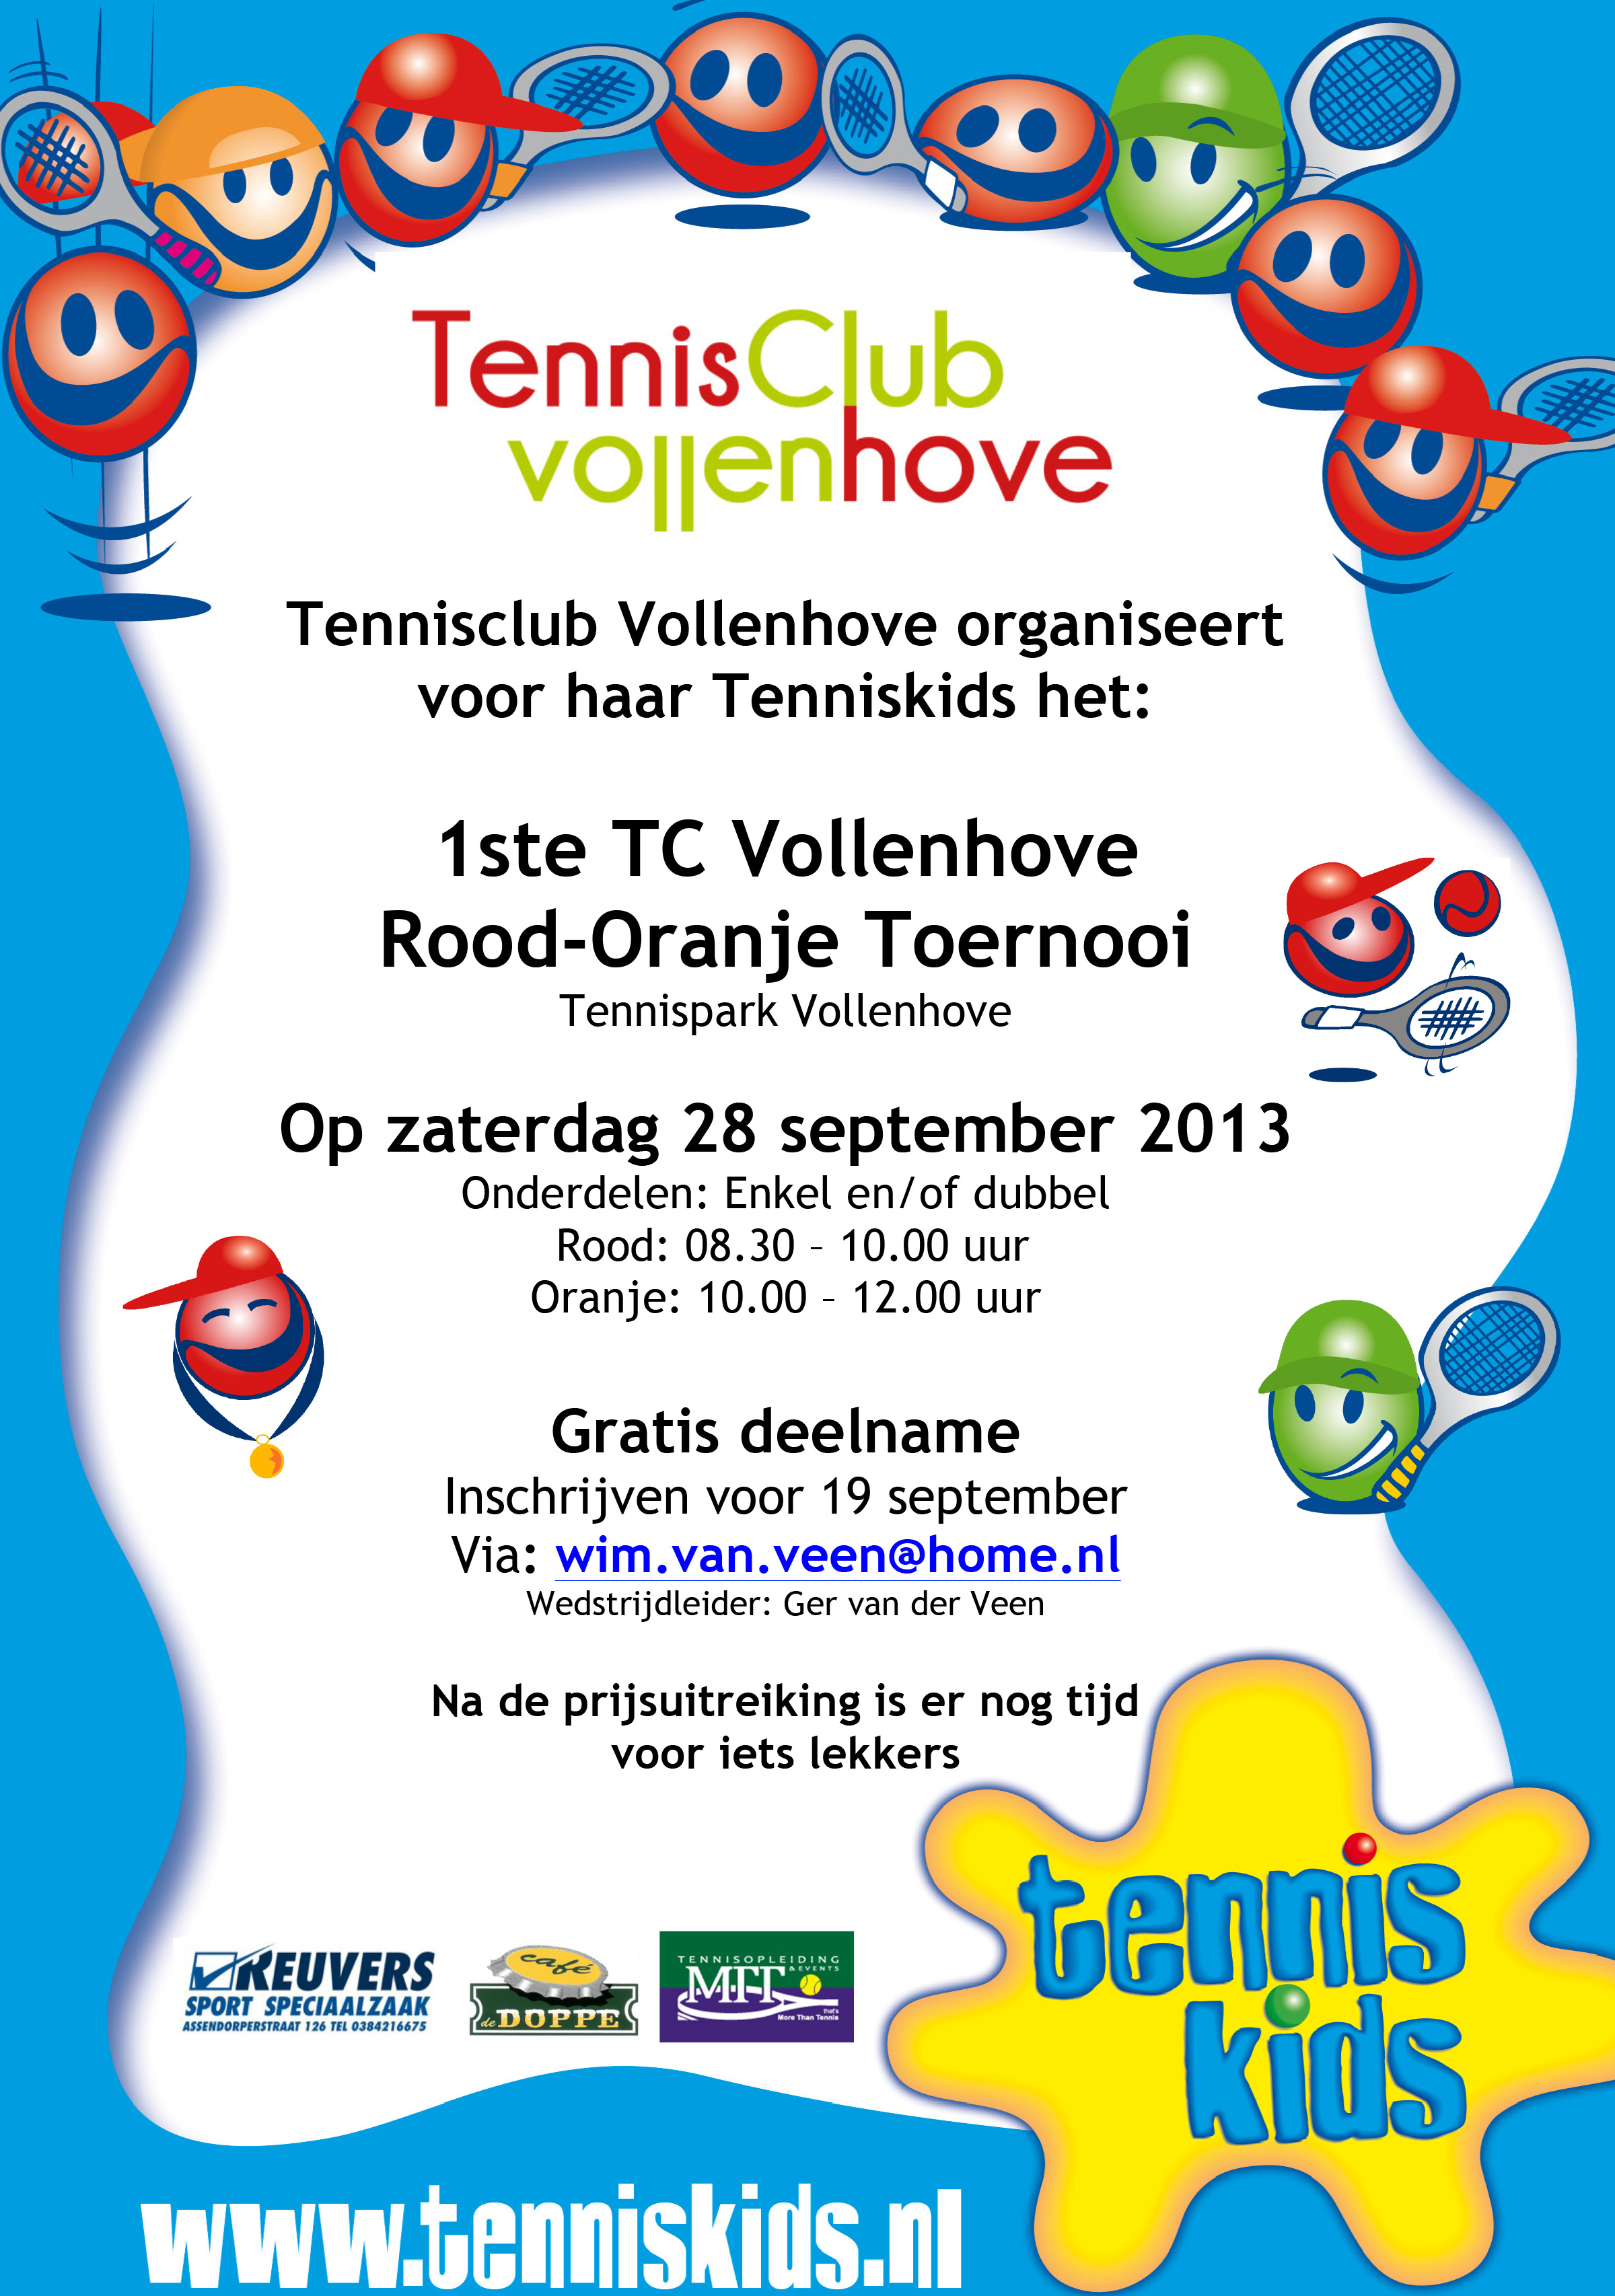 Microsoft Word - Poster 1e TC Vollenove R O G Toernooi.docx